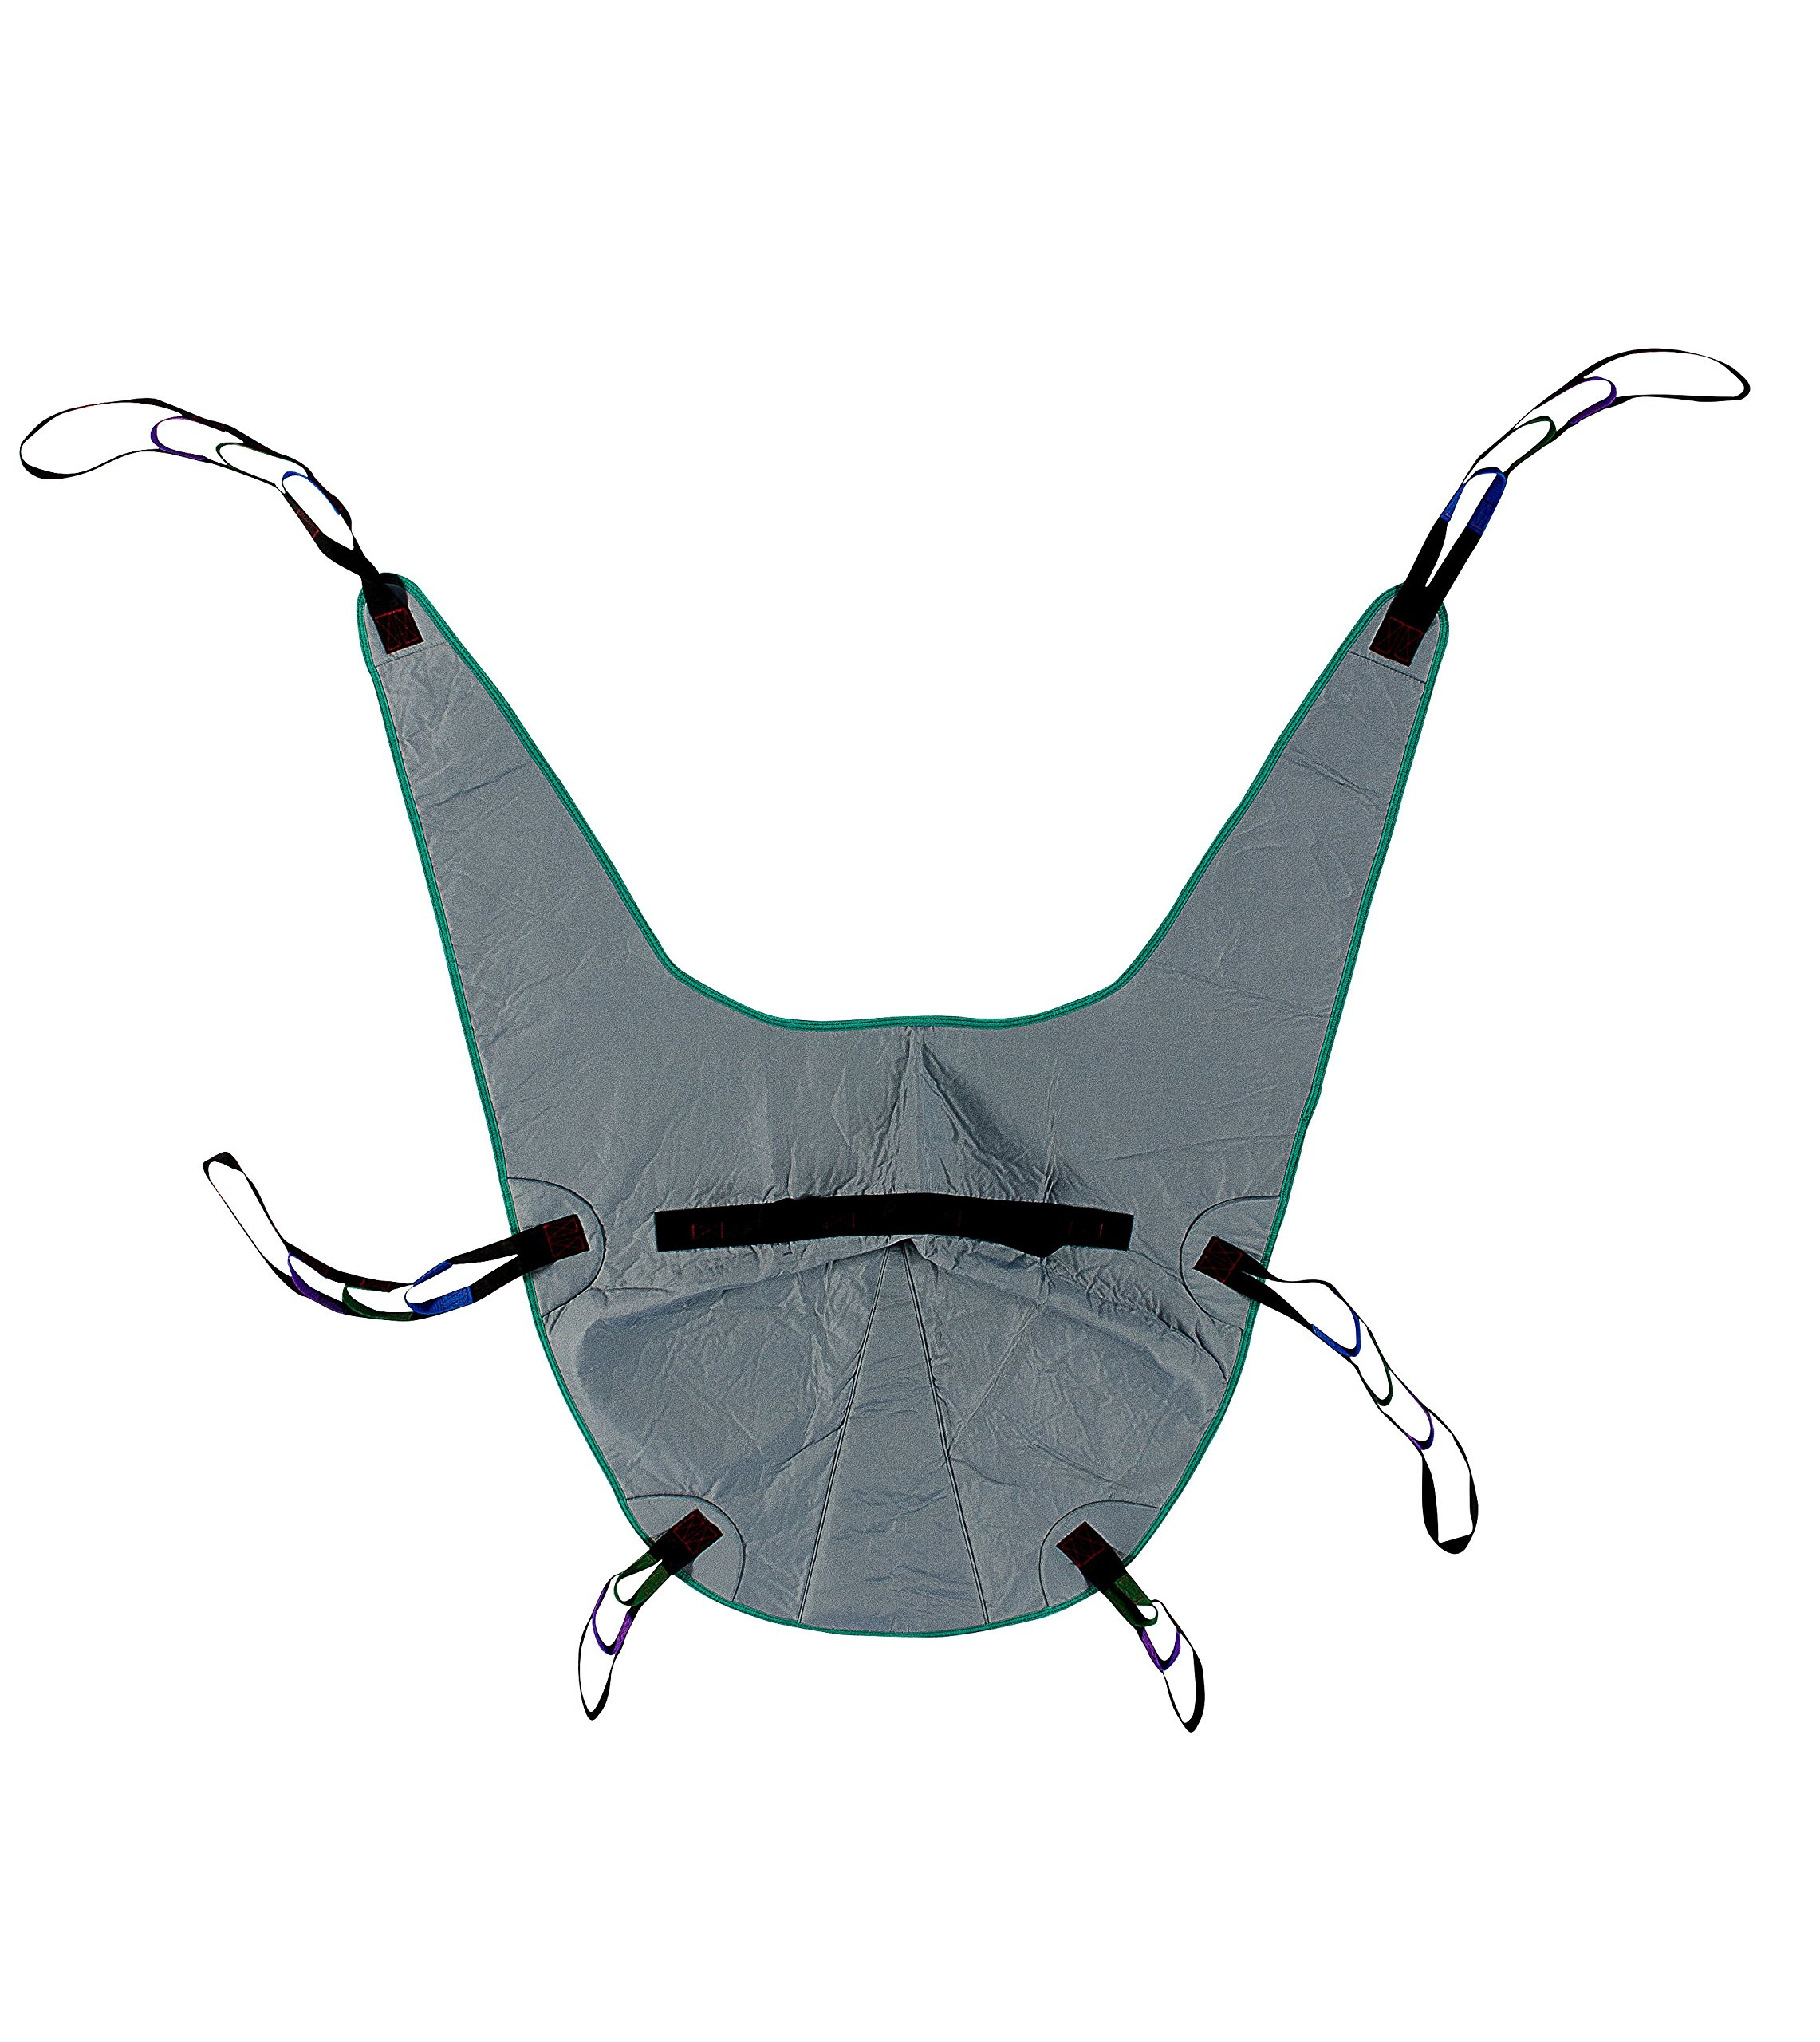 Divided Leg Padded Patient Lift Universal Sling with Head Support, Size Medium, 450lb Capacity